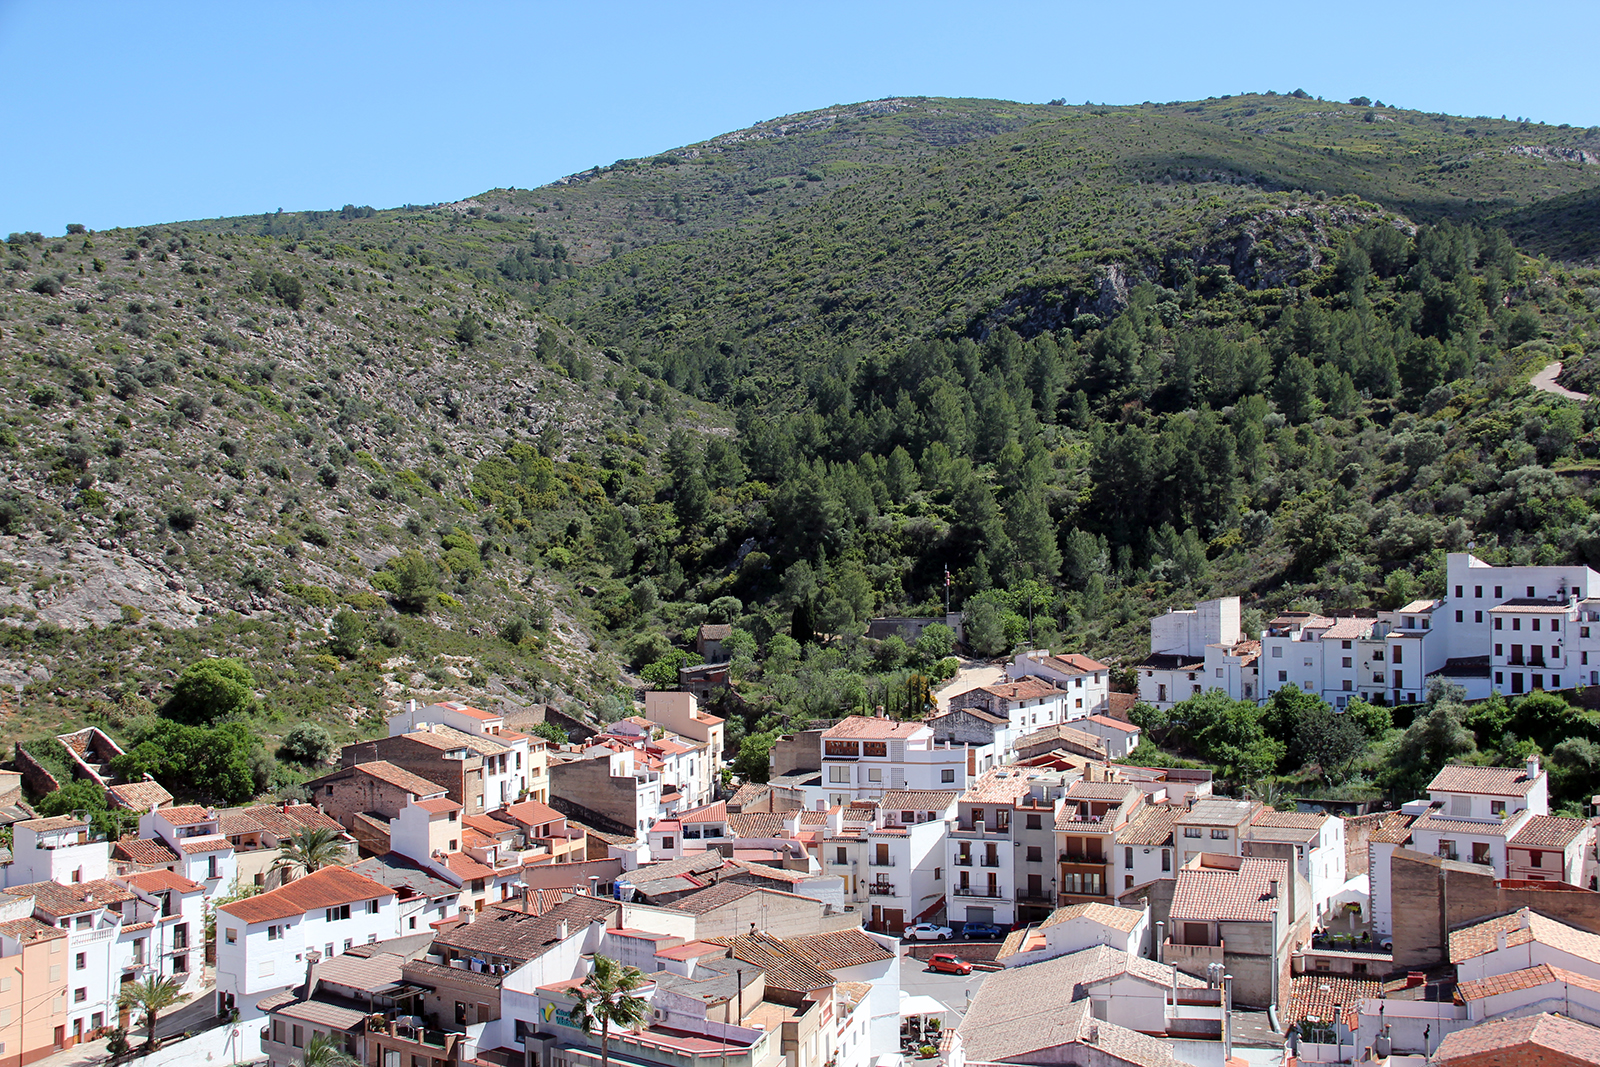 Vilafames one of Spain's most beautiful towns